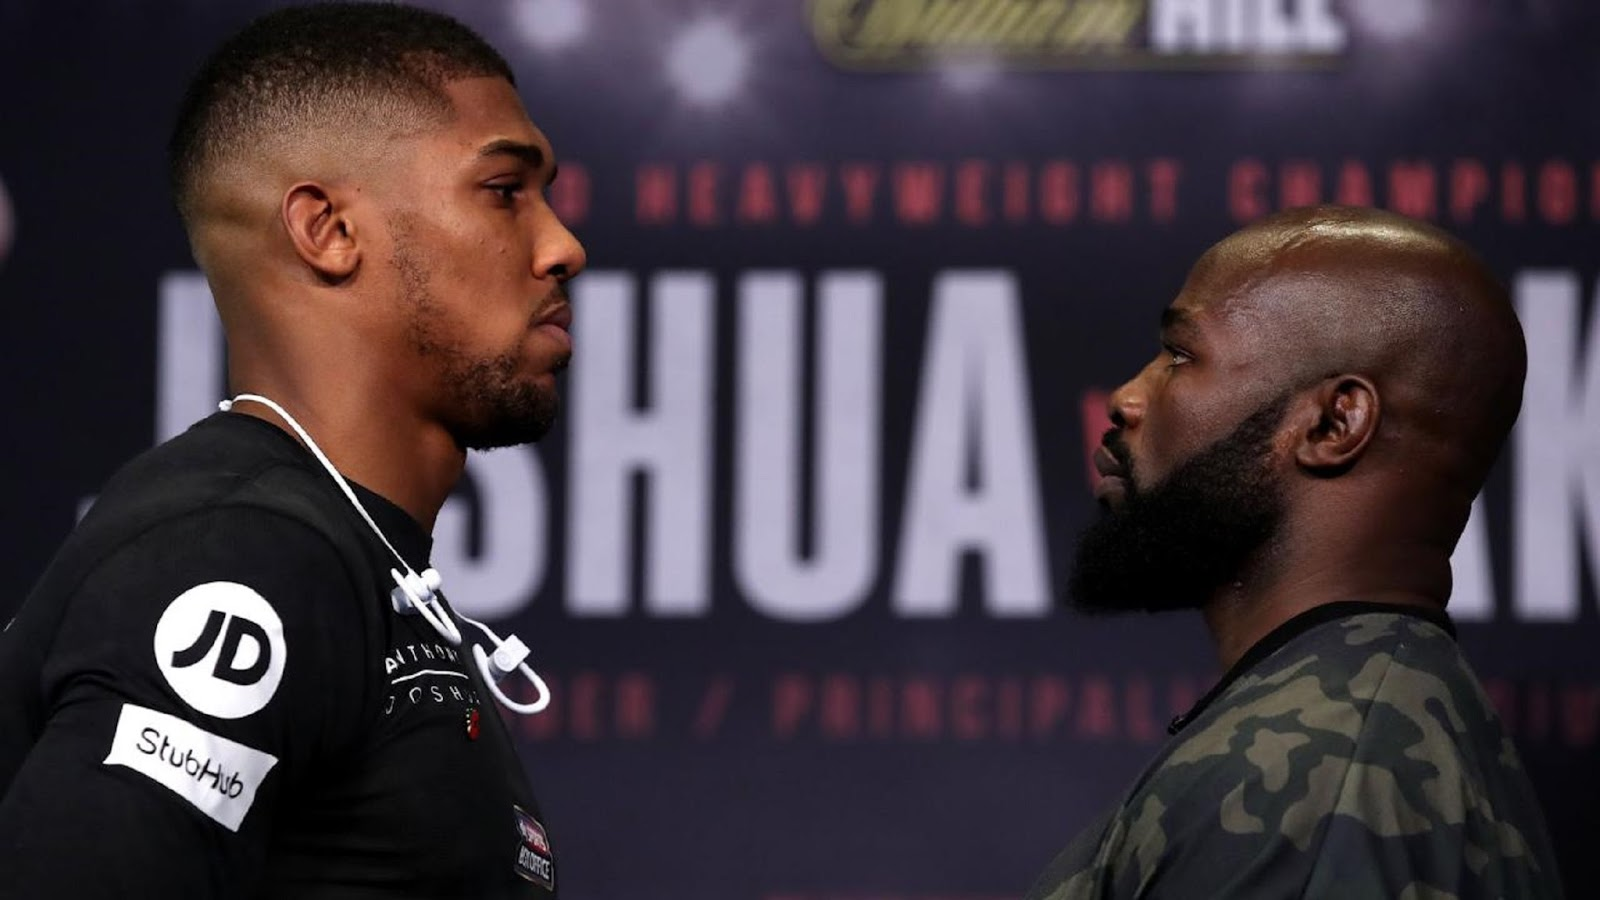 ANTHONY JOSHUA VS CARLOS TAKAM 7